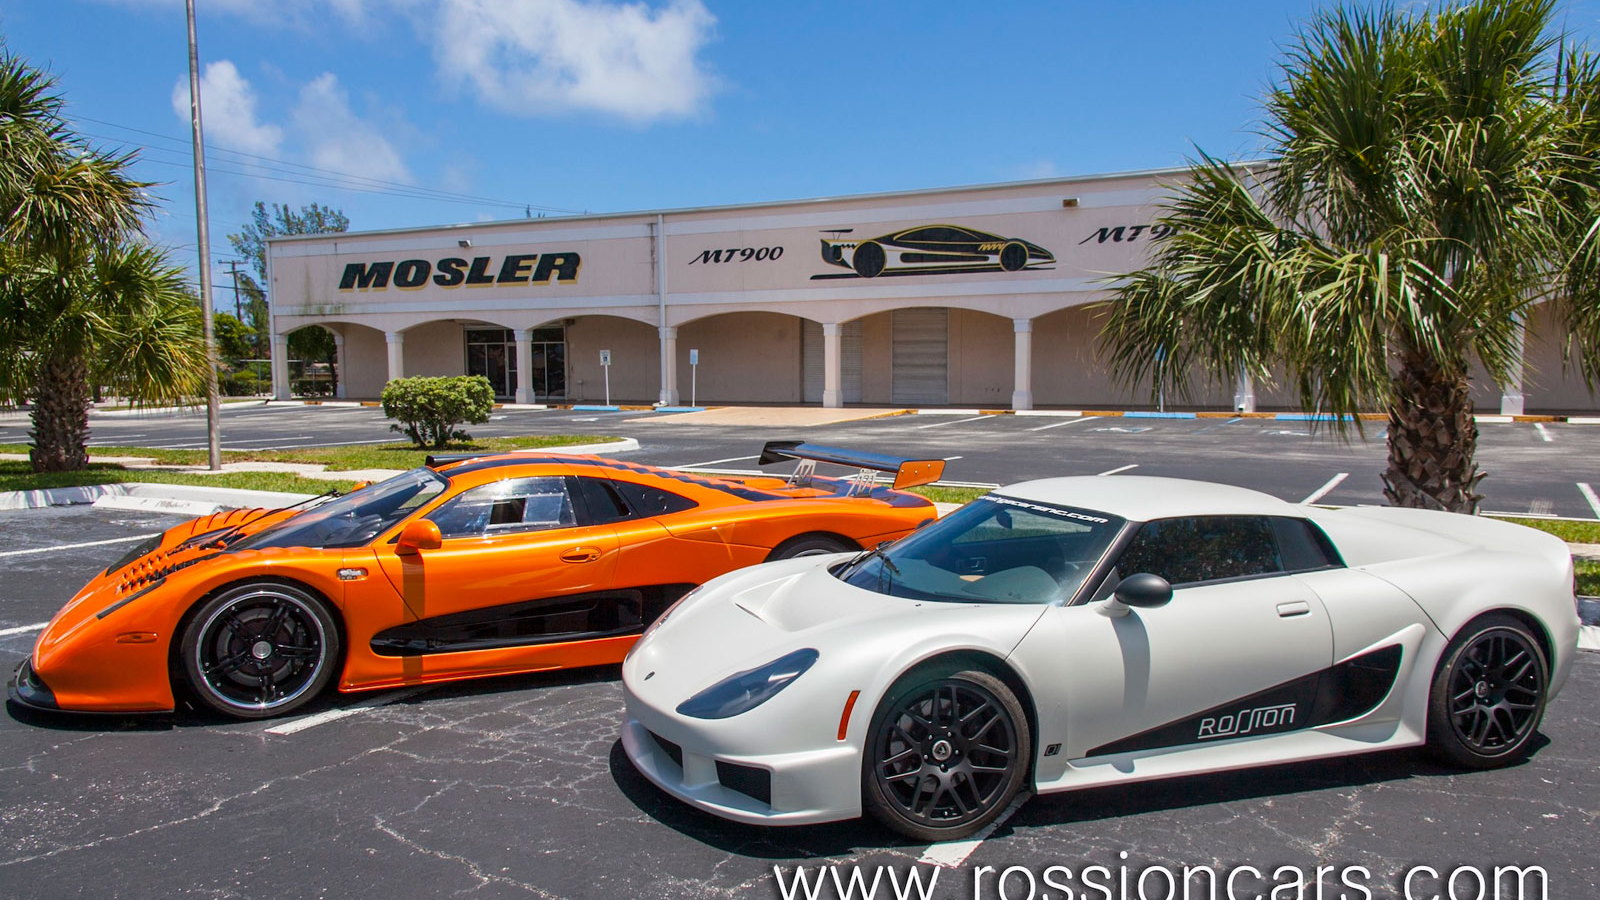 Mosler MT900 and Rossion Q1